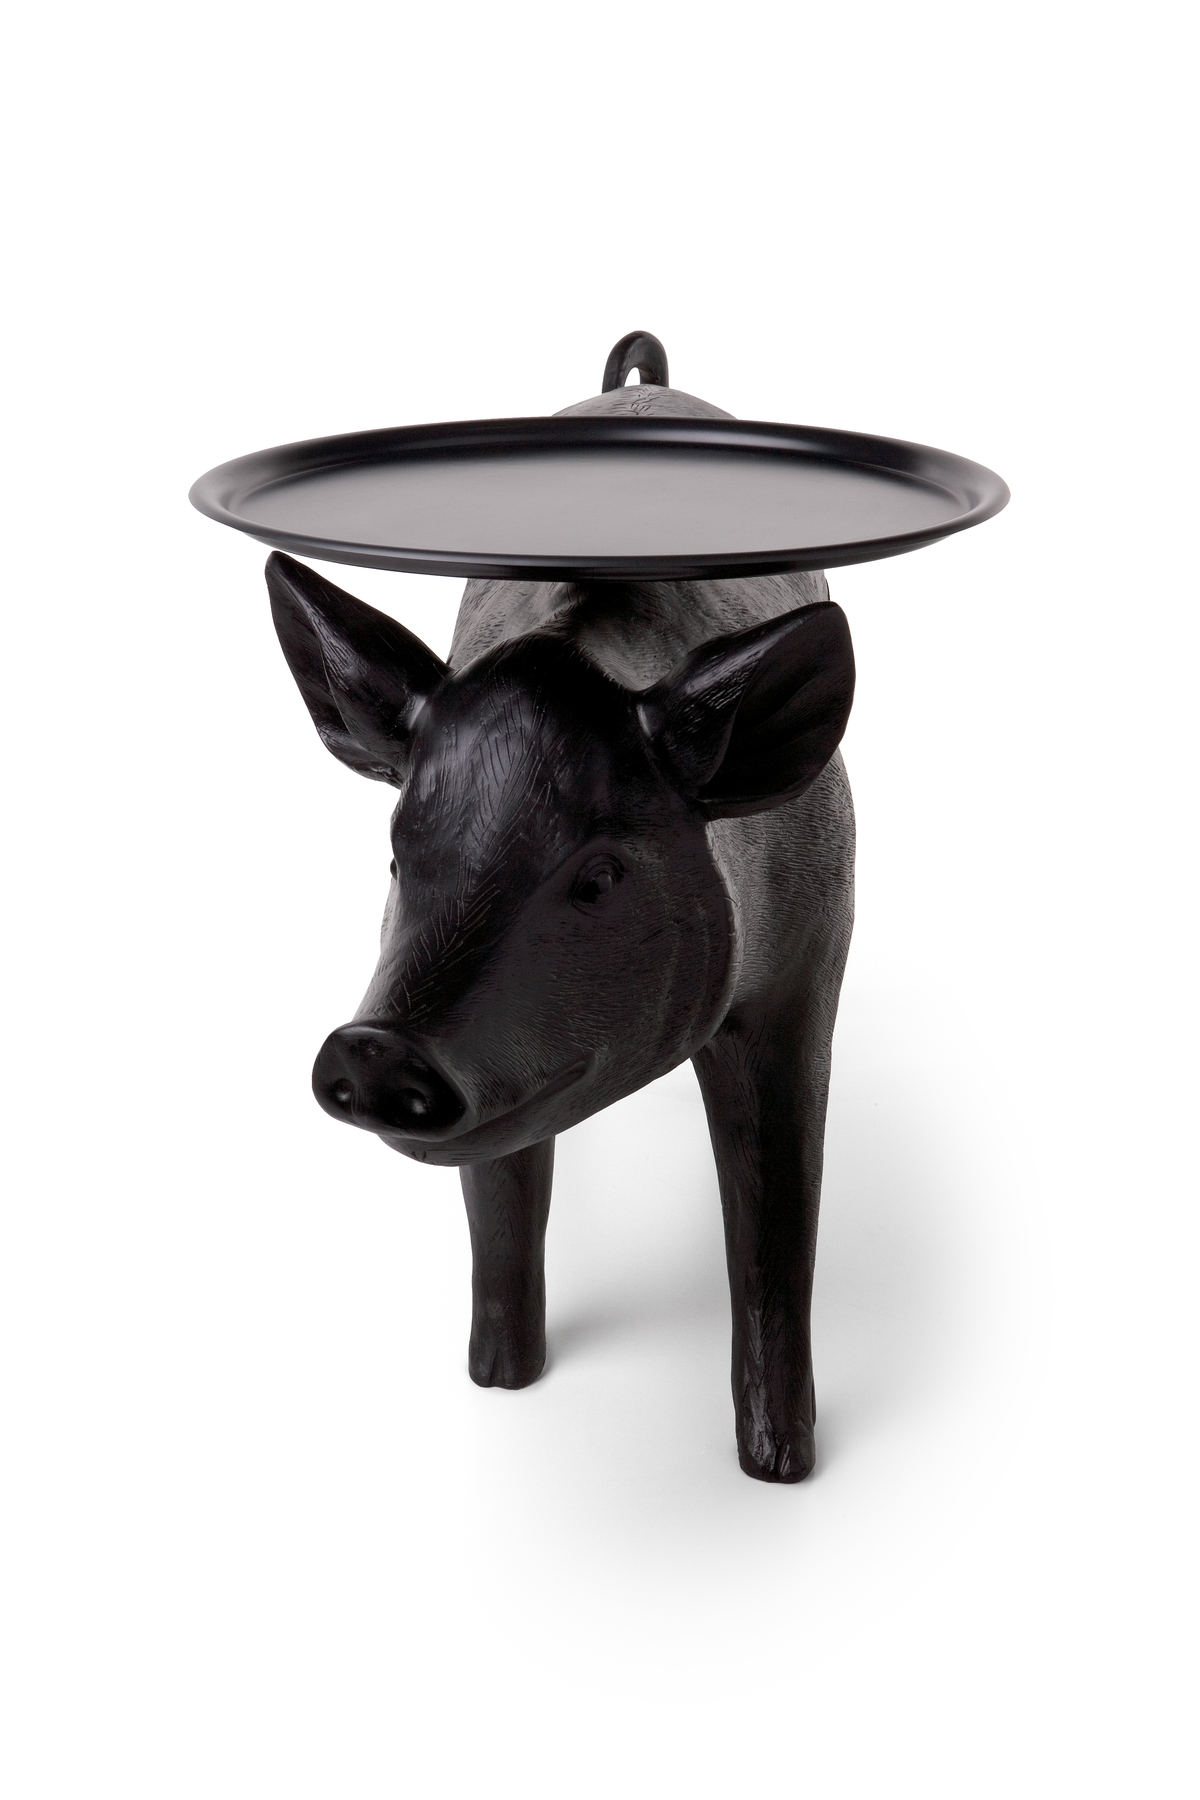 pig table front view